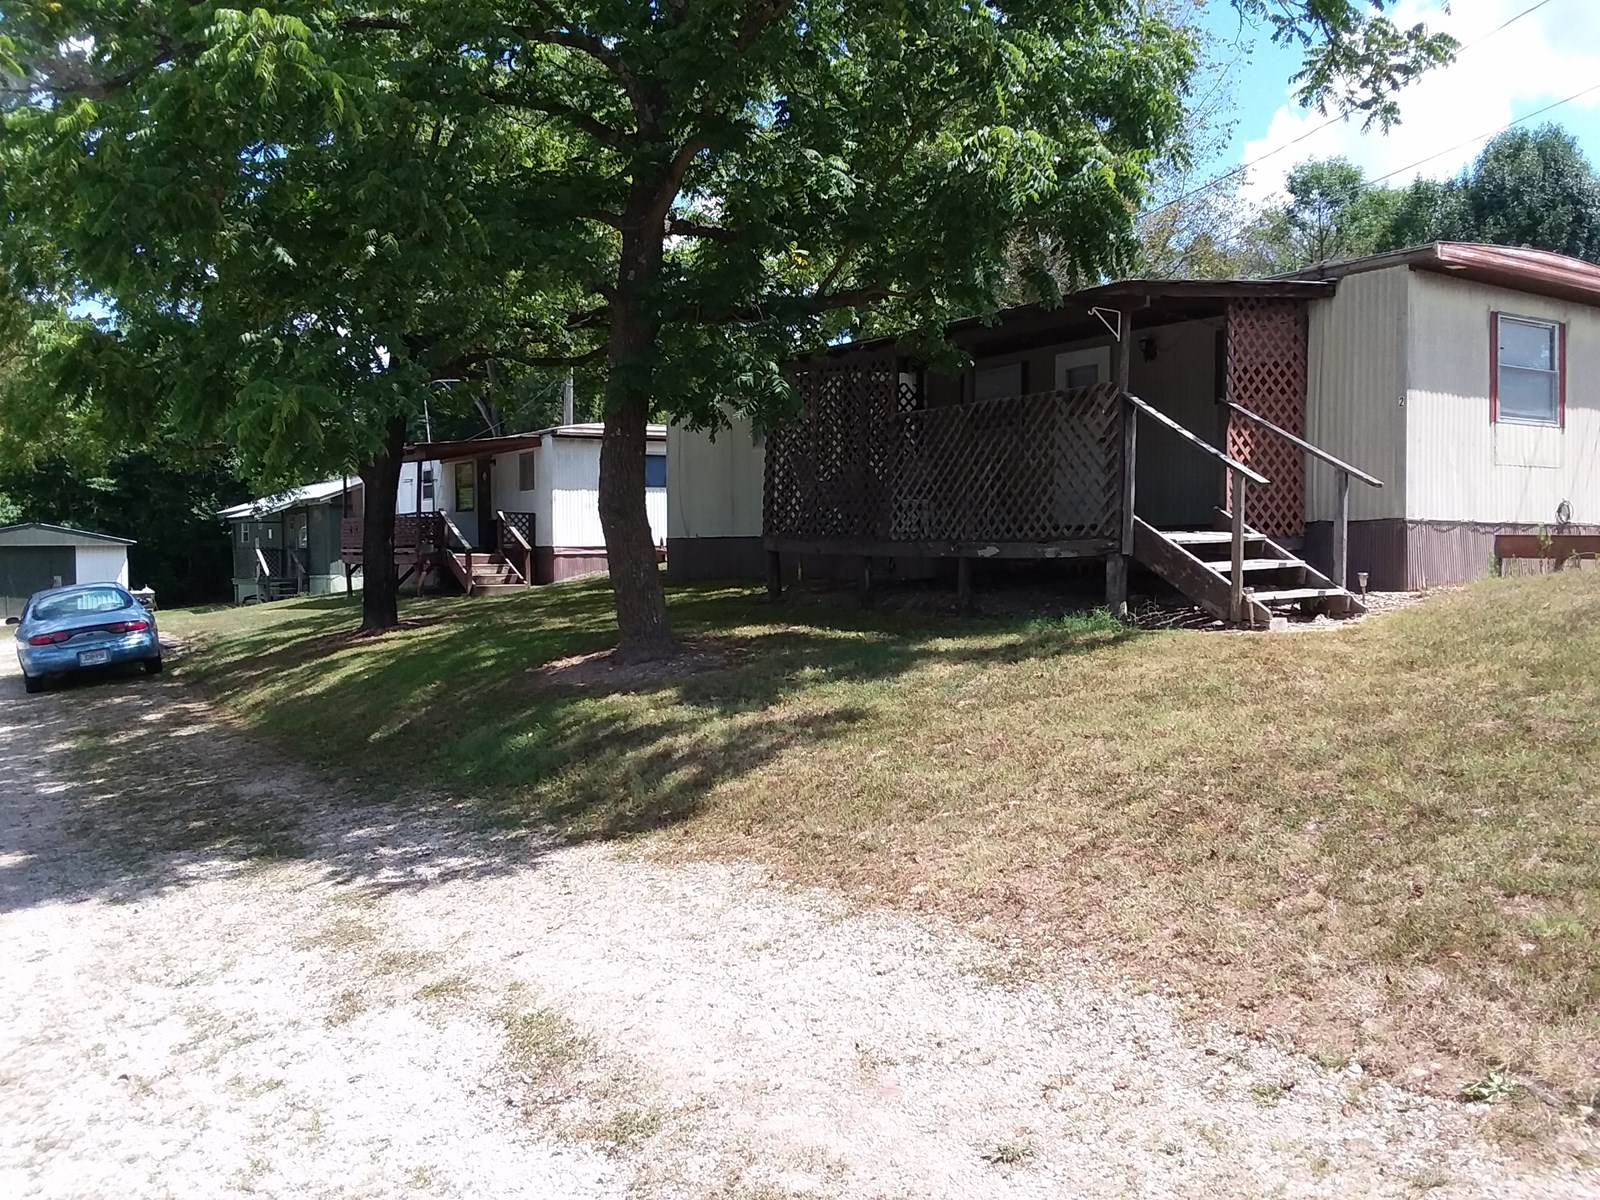 MOBLIE HOME PARK in Ava, MO For Sale